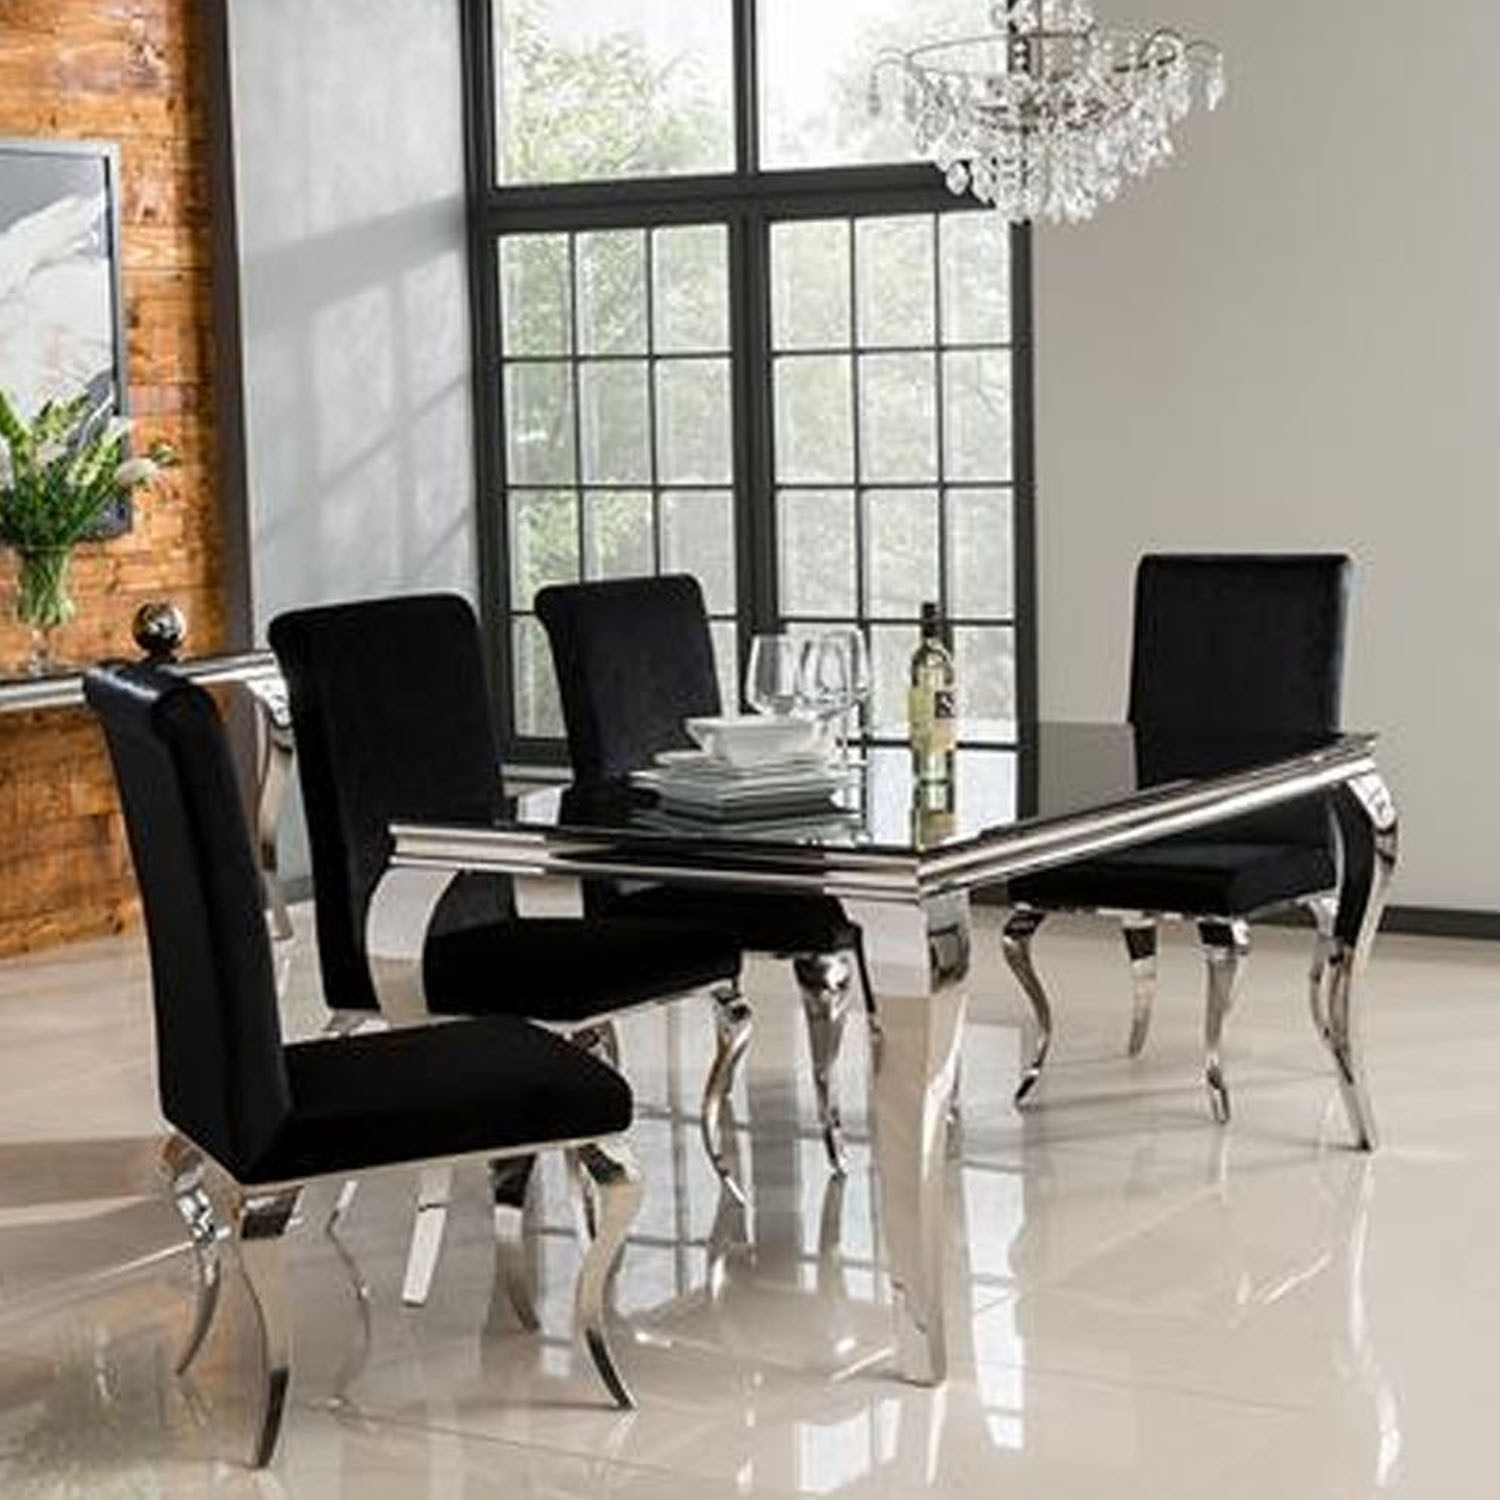 finest selection 2e284 4ffd5 Louis Mirrored 160cm Dining Table in Black - Vida Living - Seats 4-6